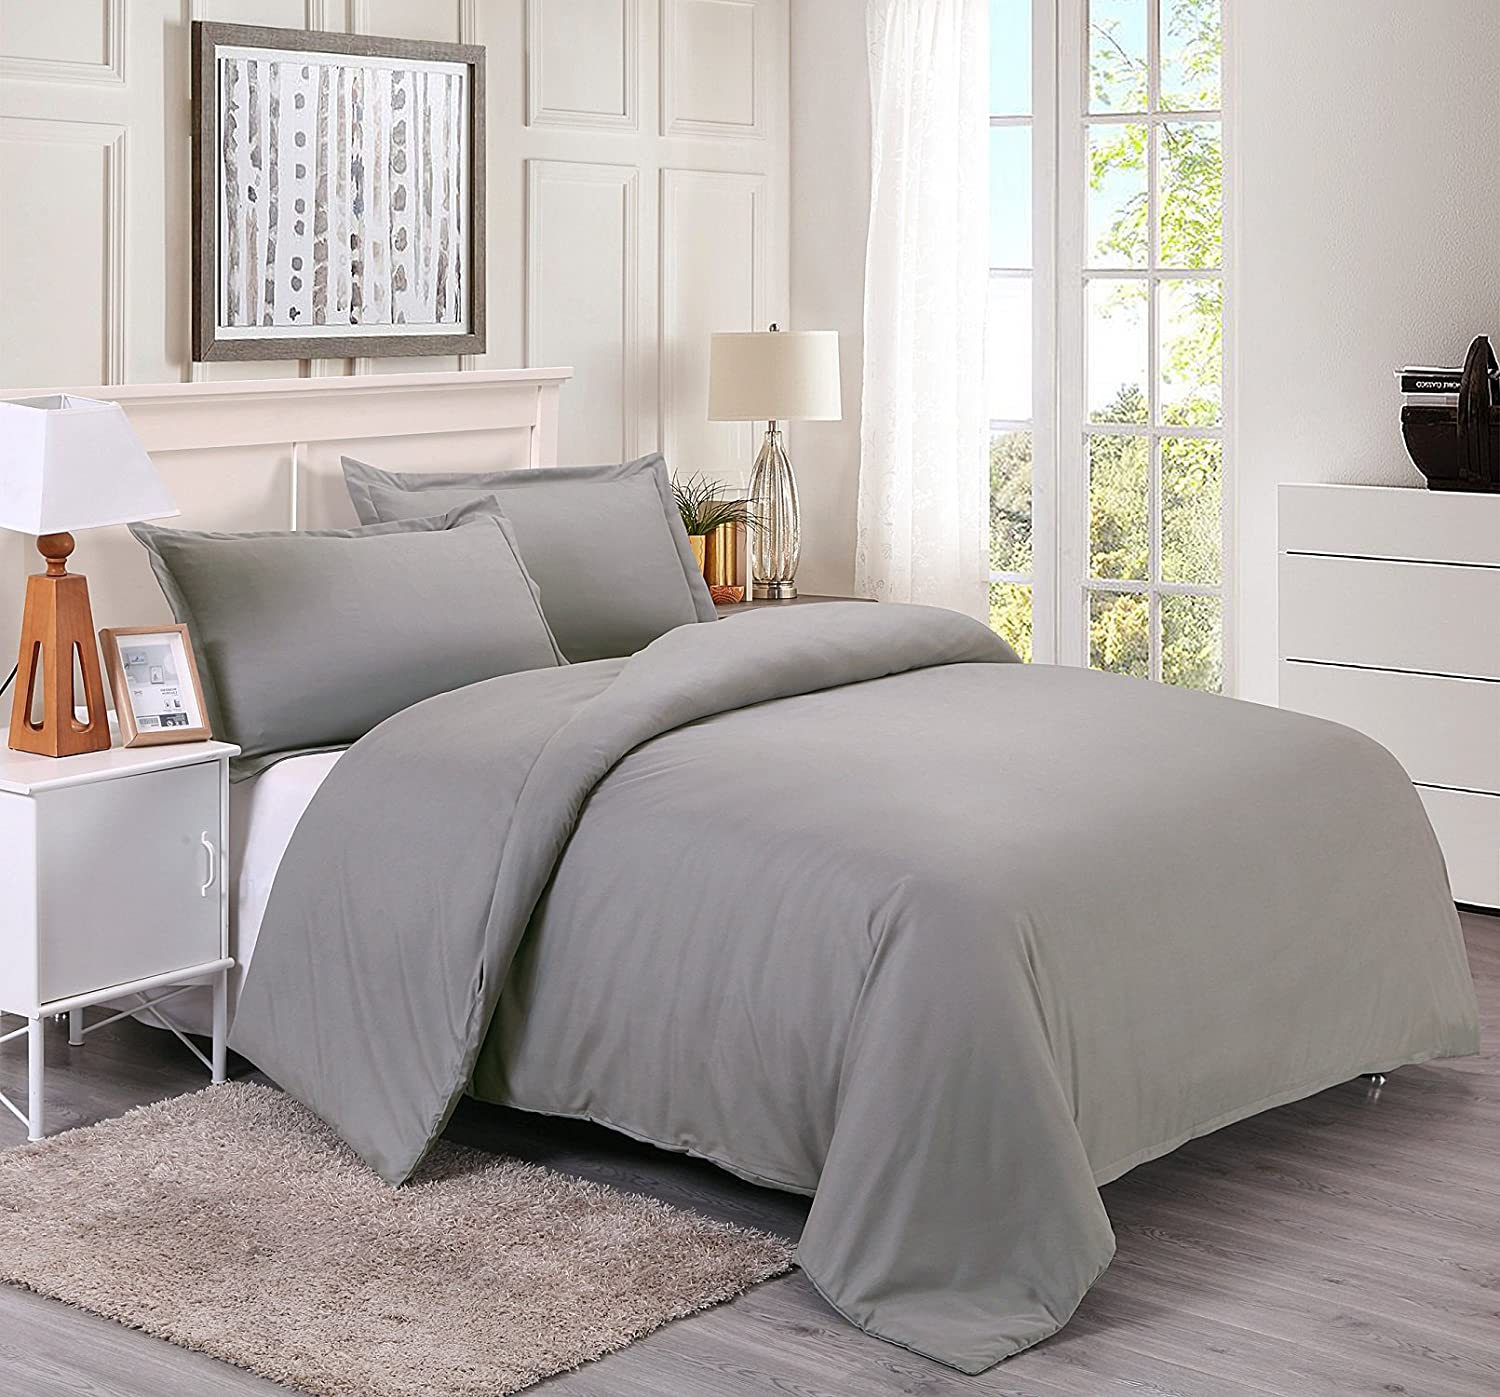 pattern madison dark piece product free casual grey overstock meyers today bath solid park shipping set comforter bedding